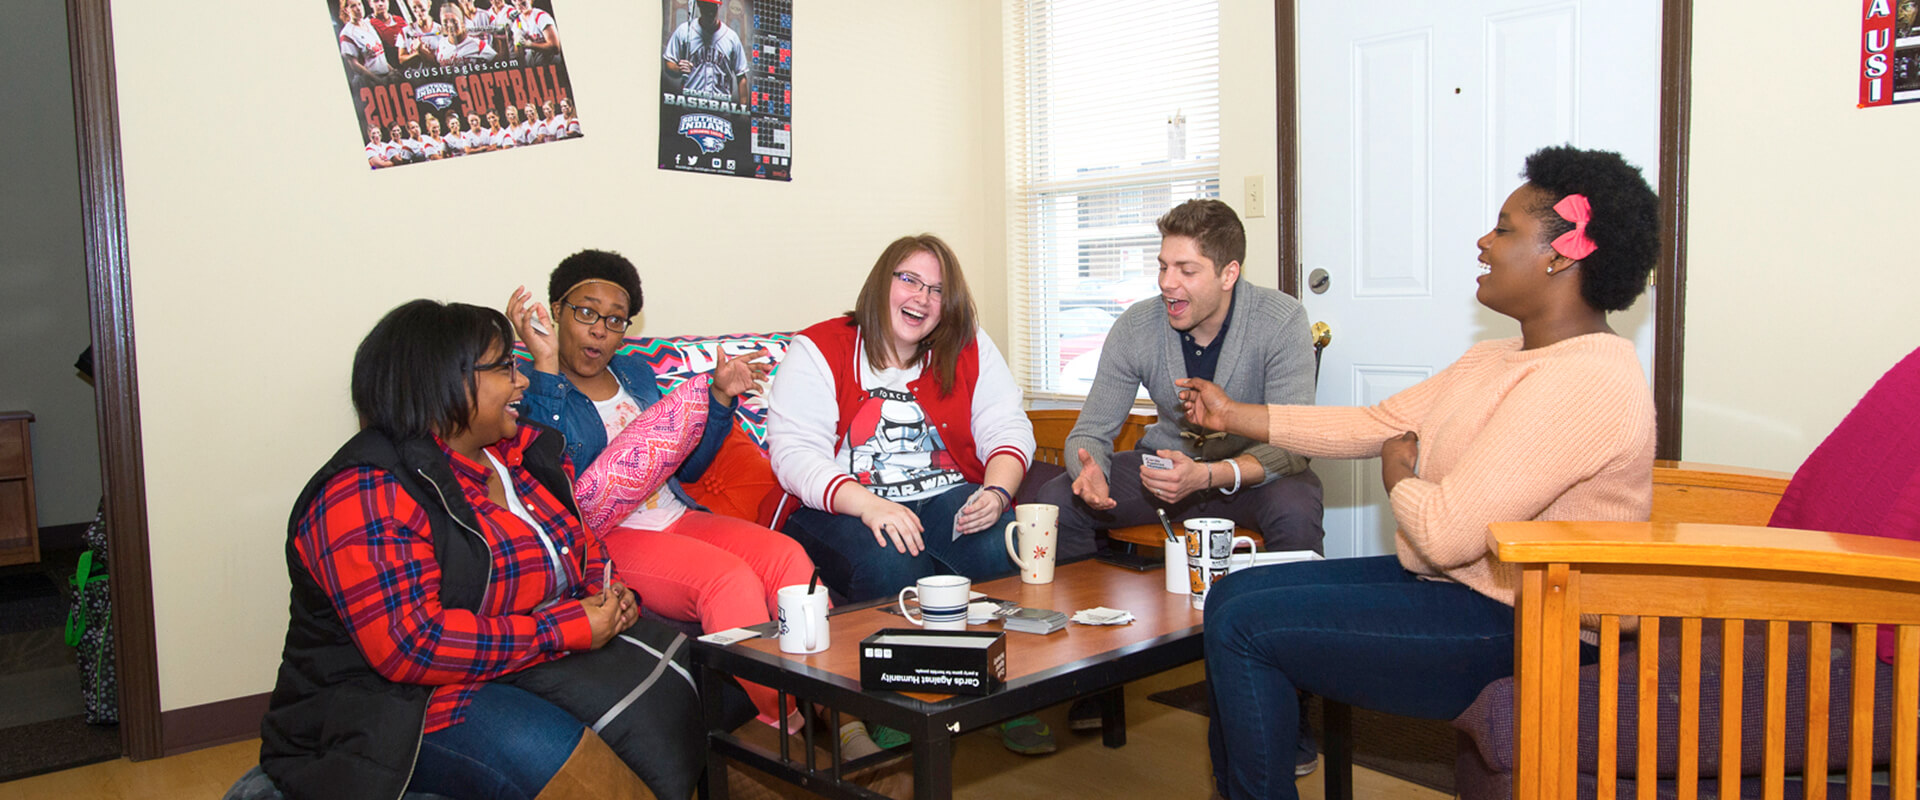 group of students playing a game on a coffee table in a campus apartment